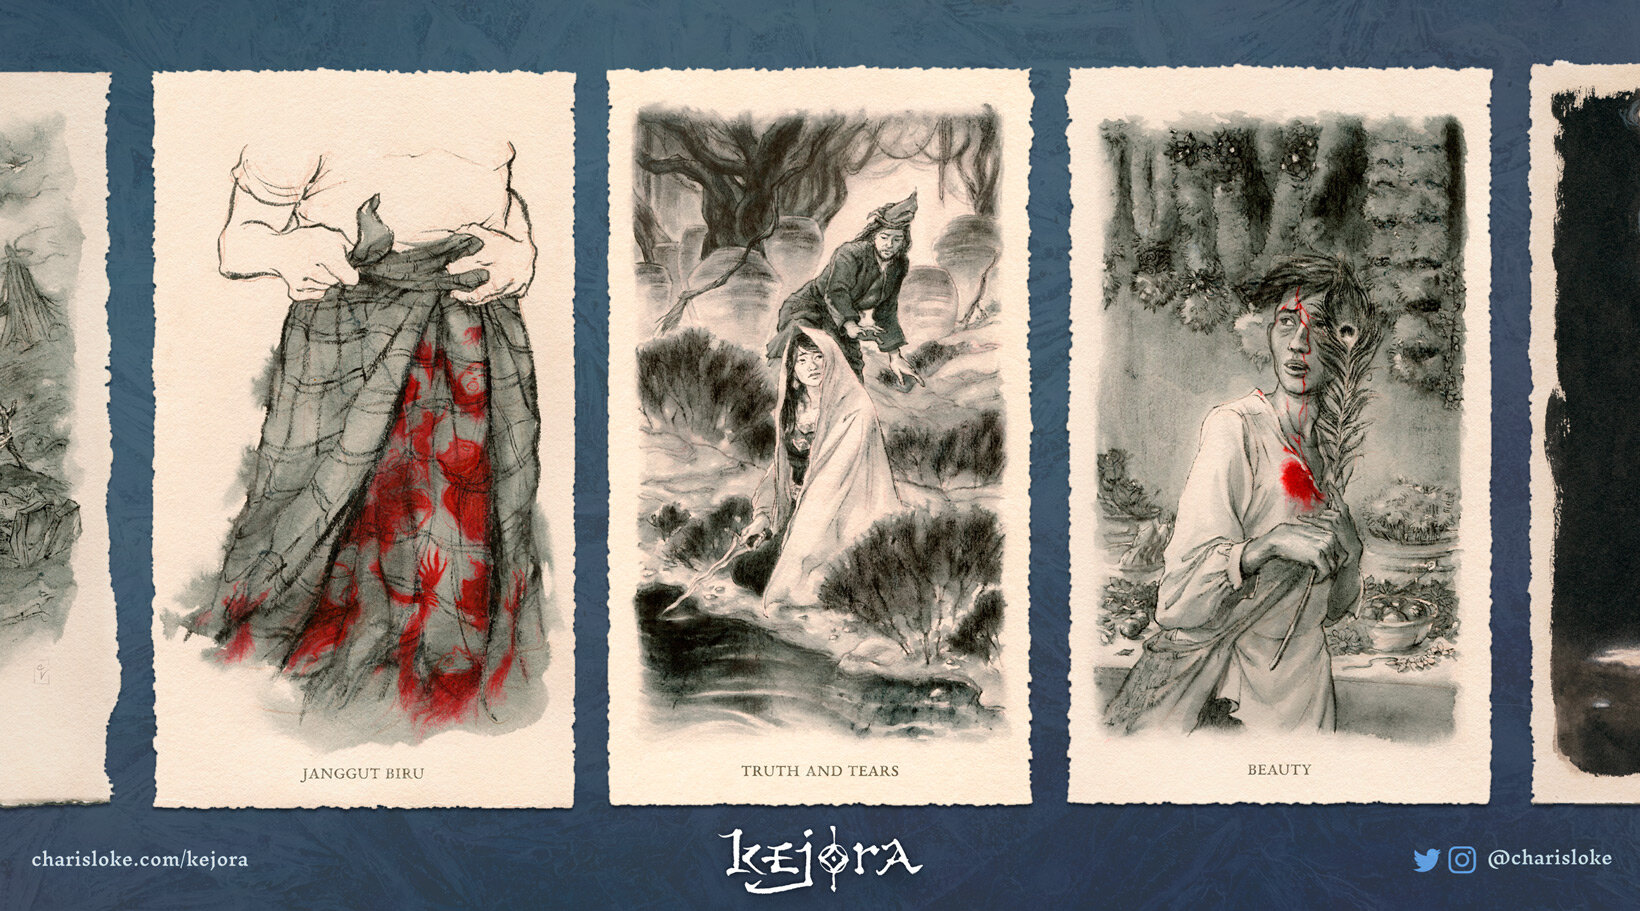 KEJORA:  writing and art  inspired by Southeast Asian cultures and realities.